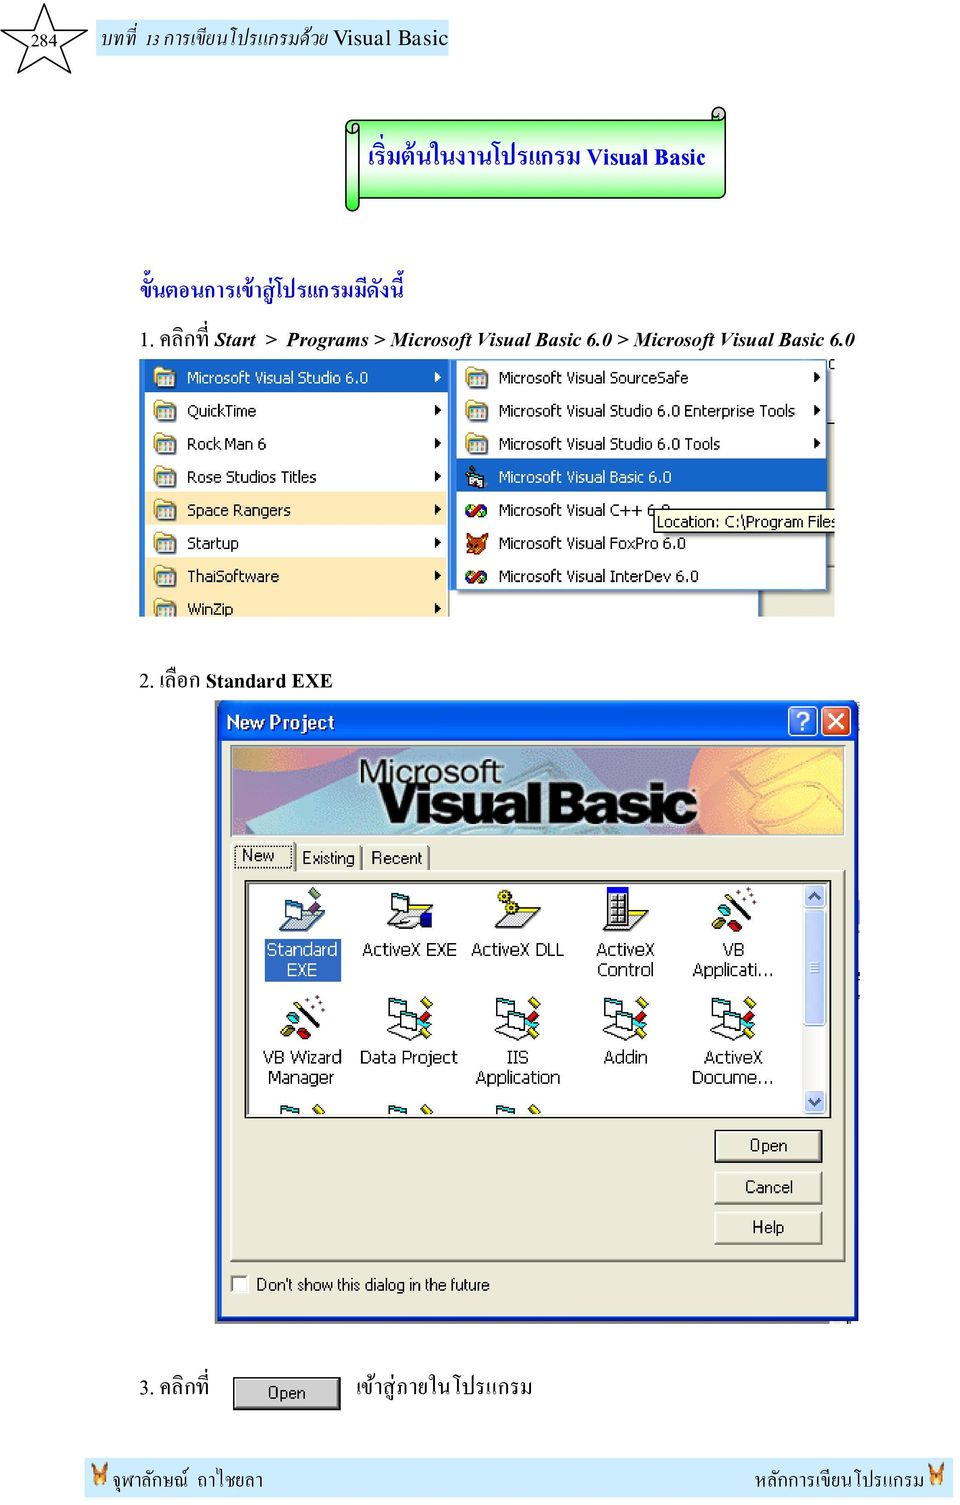 คล กท Start > Programs > Microsoft Visual Basic 6.